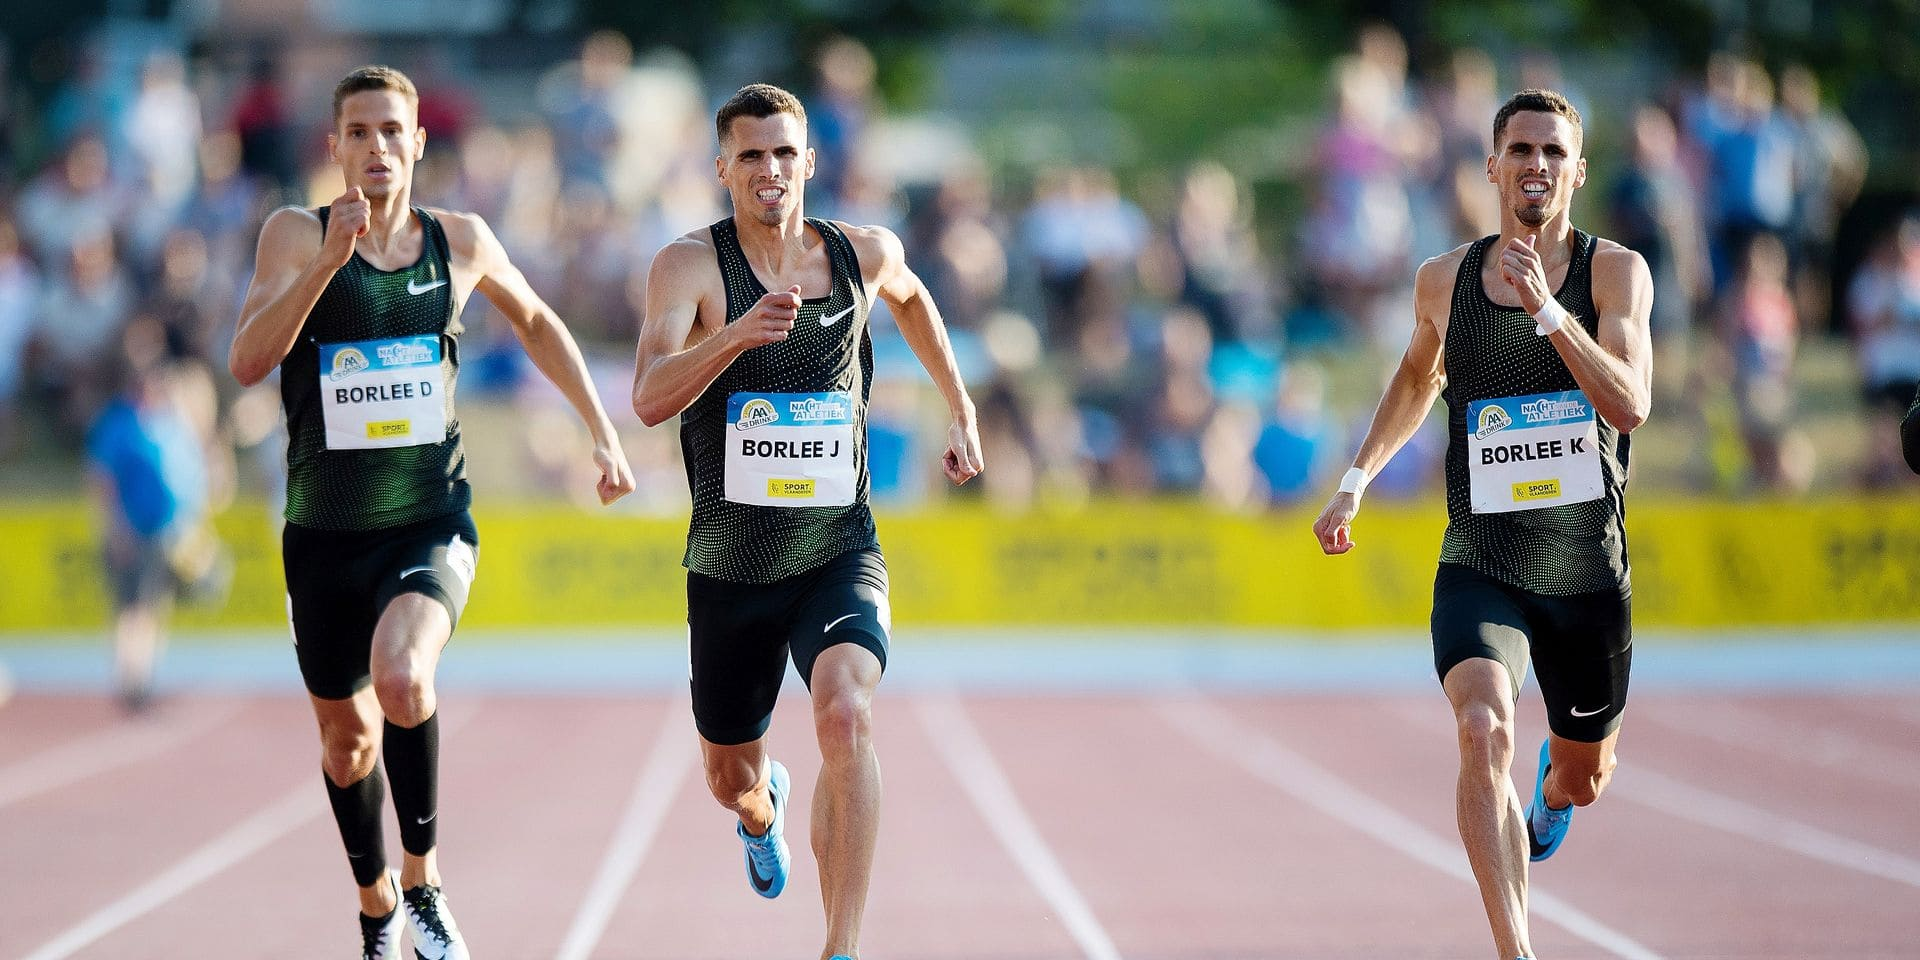 Belgian Dylan Borlee, Belgian Jonathan Borlee and Belgian Kevin Borlee pictured in action during the 39th edition of the 'Nacht van de Atletiek (EA Classic Meeting) athletics meeting, Saturday 21 July 2018, in Heusden-Zolder. BELGA PHOTO JASPER JACOBS